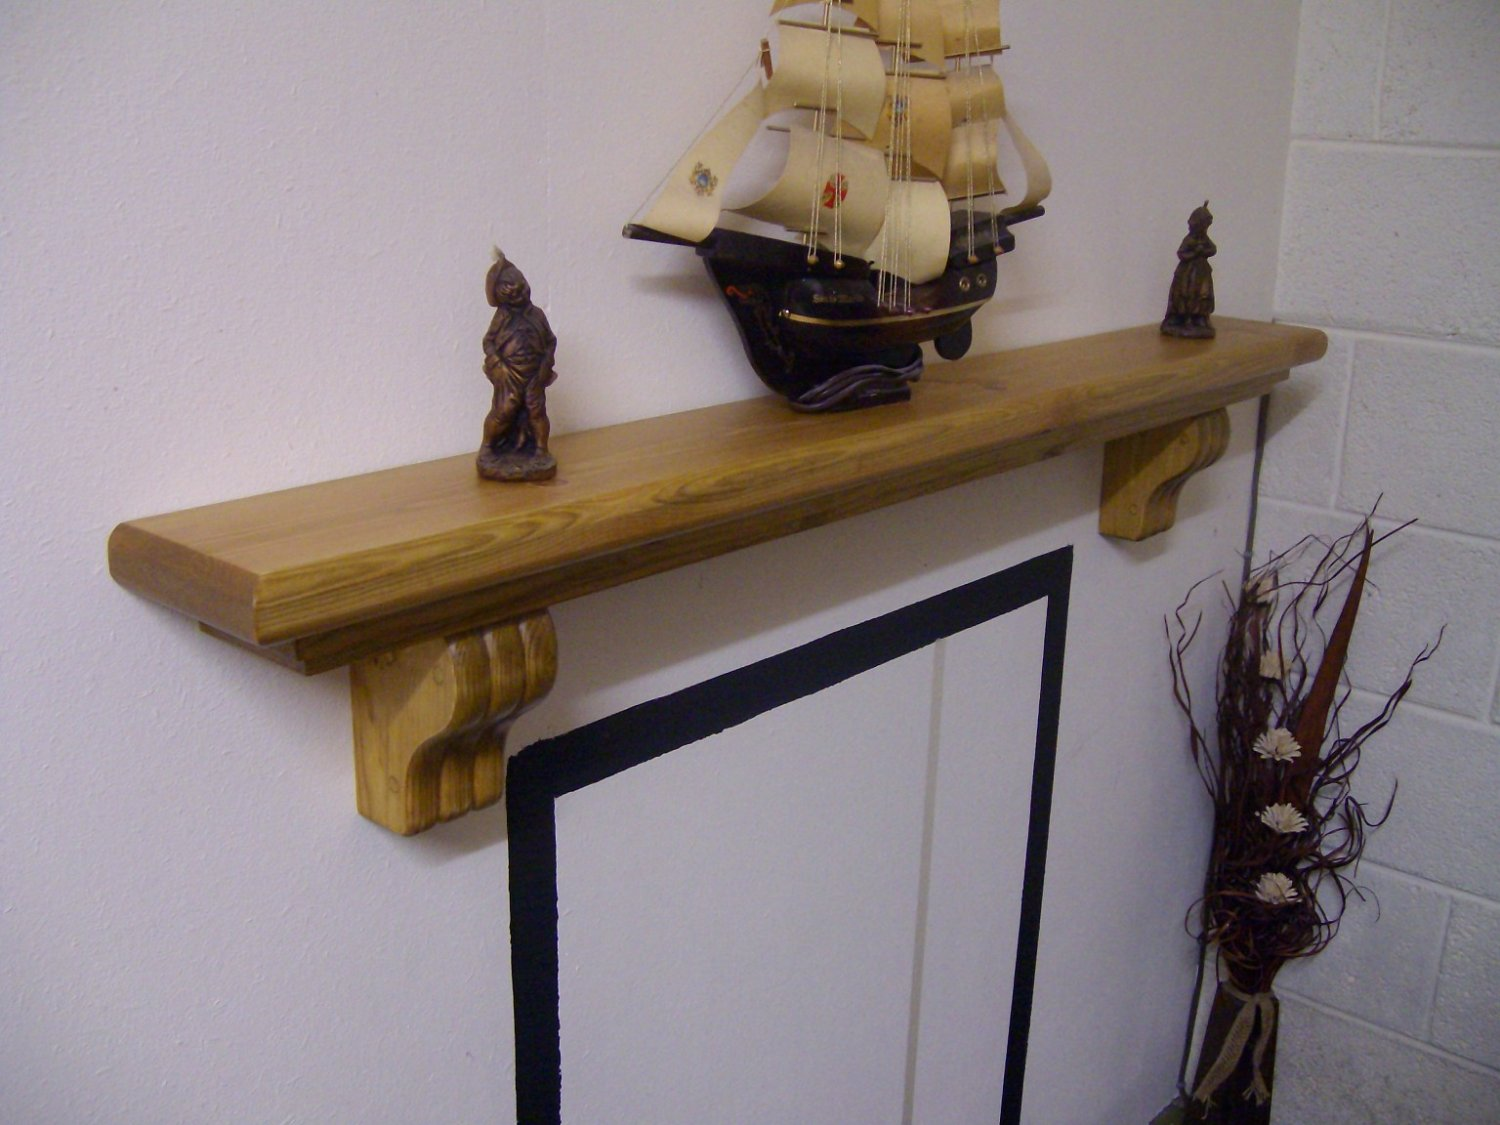 "Mantel Shelf-Corbels-Stove Shelf-Pine-Rustic Mantle-54"" x 5 3/4"" x 2 3/4"" (1370mm x 145mm x 70mm)"